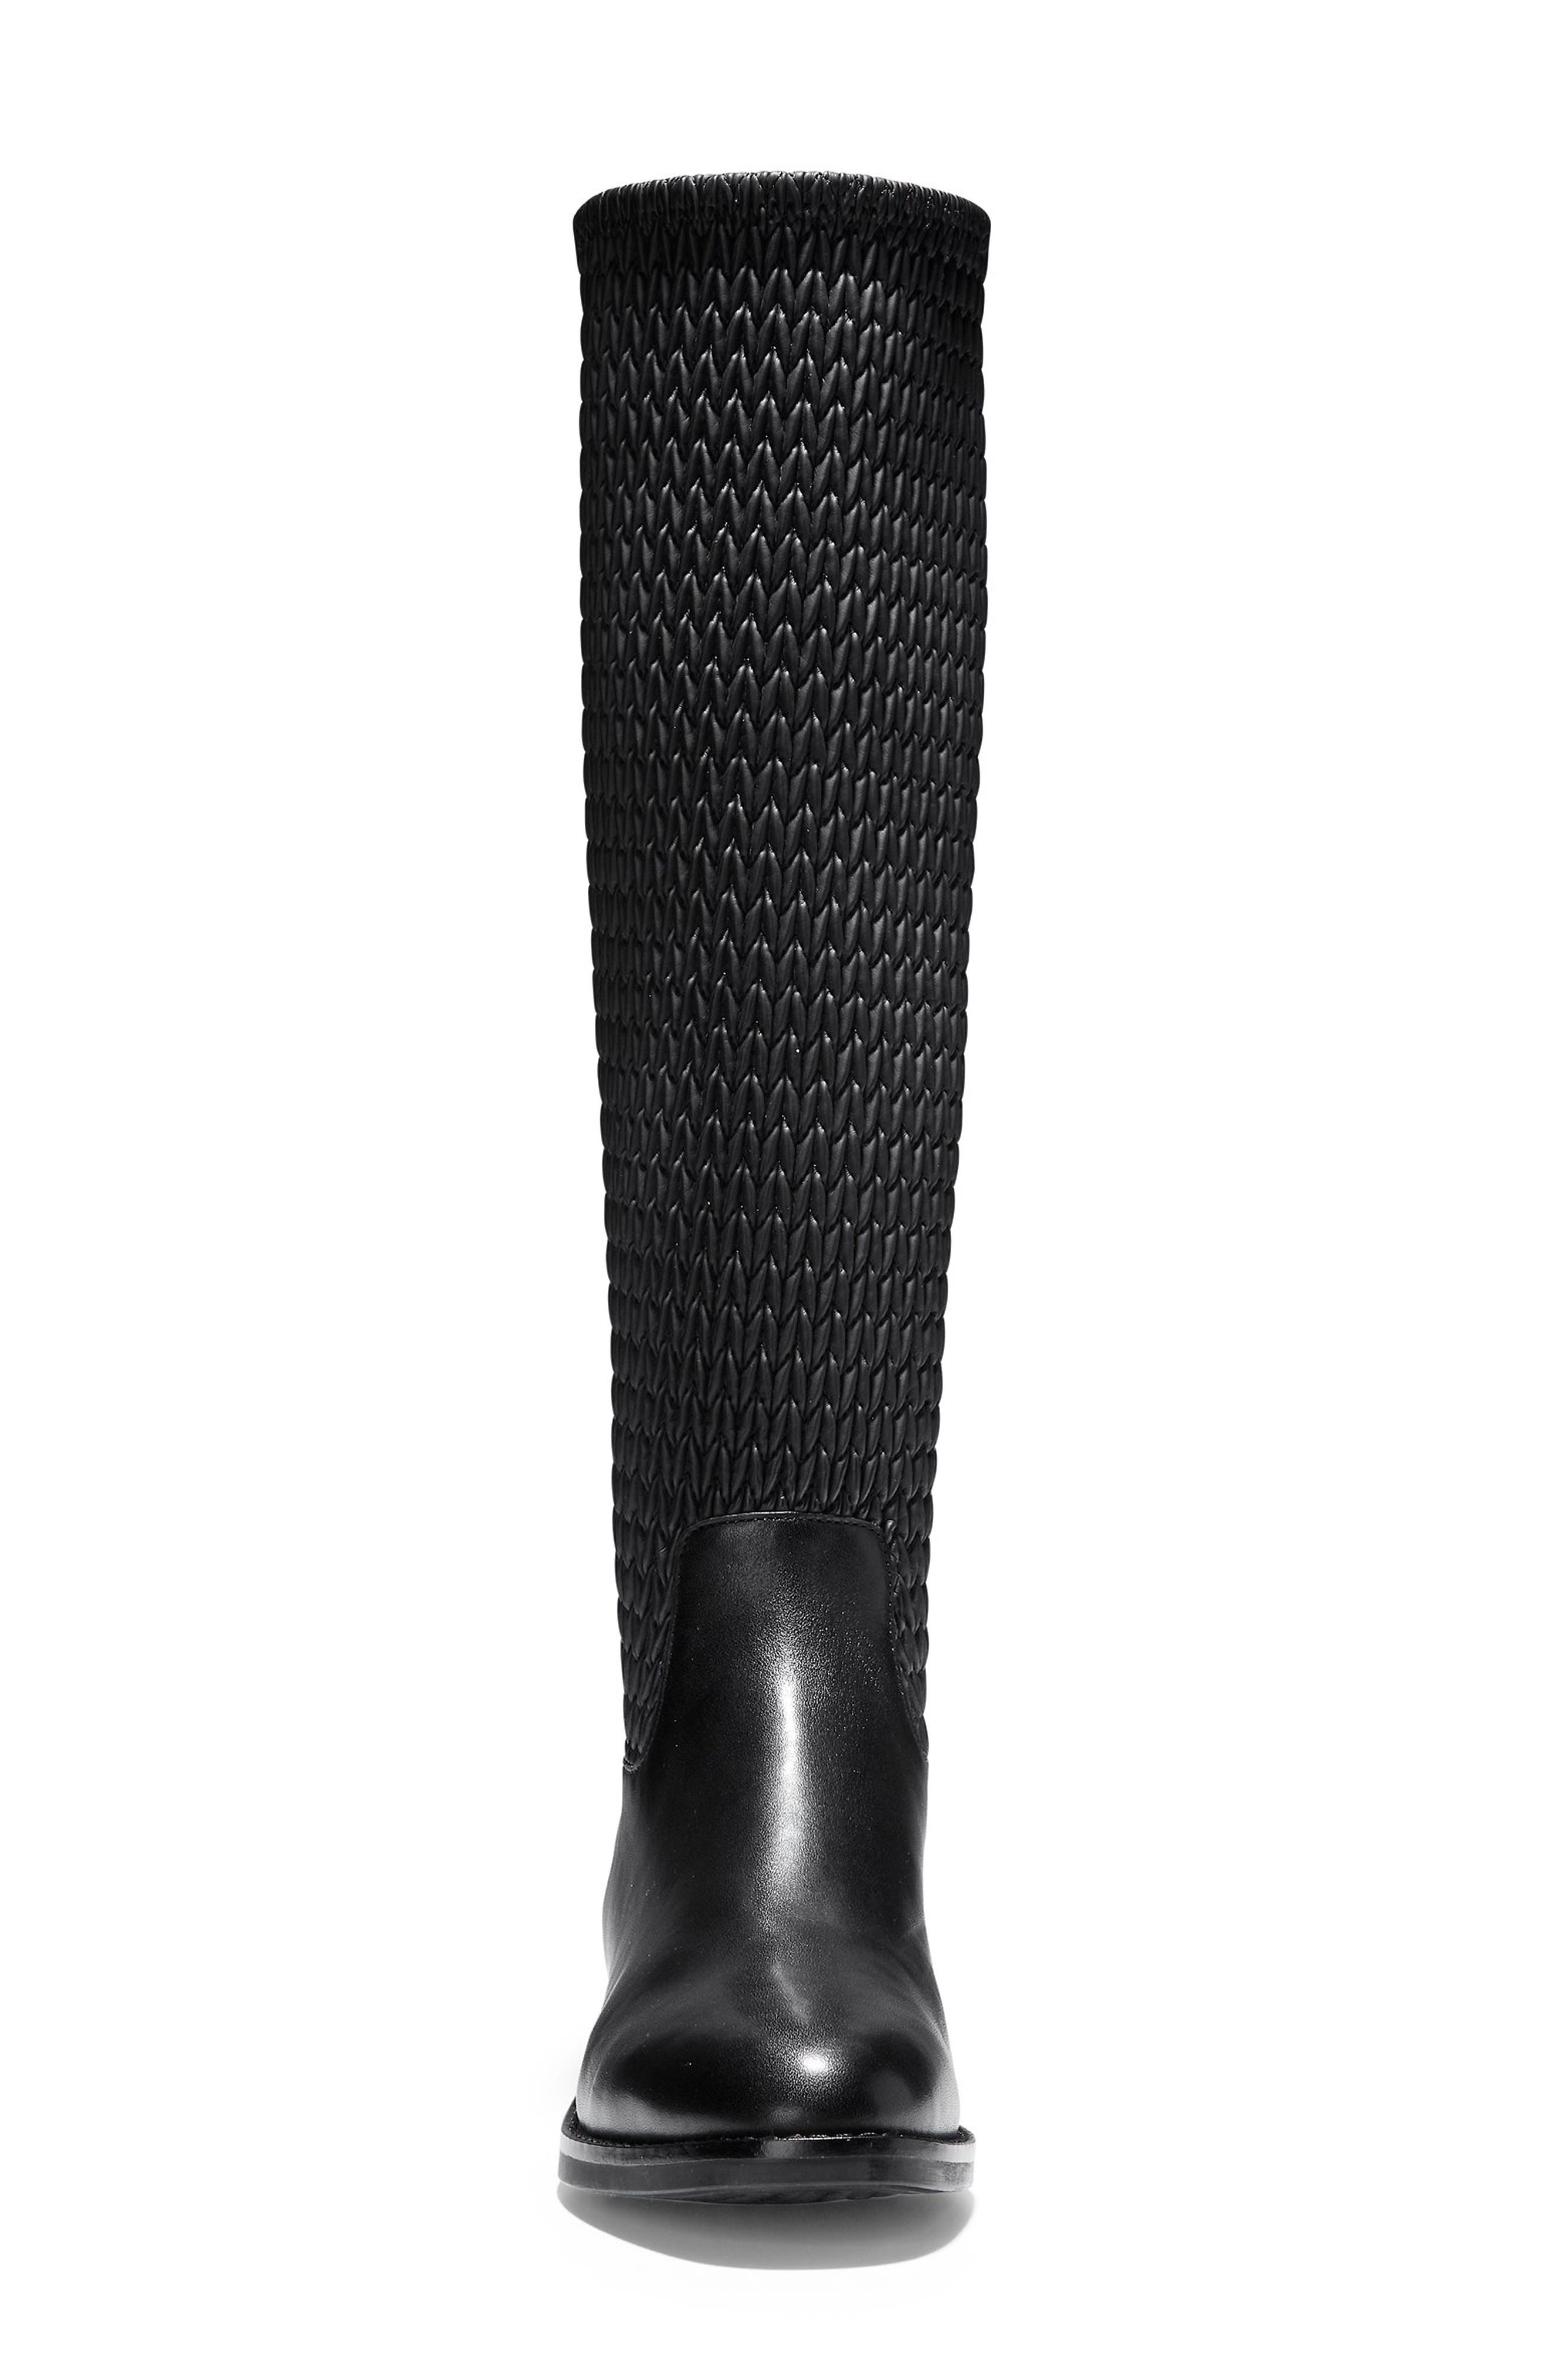 COLE HAAN, Lexi Grand Knee High Stretch Boot, Alternate thumbnail 4, color, BLACK LEATHER